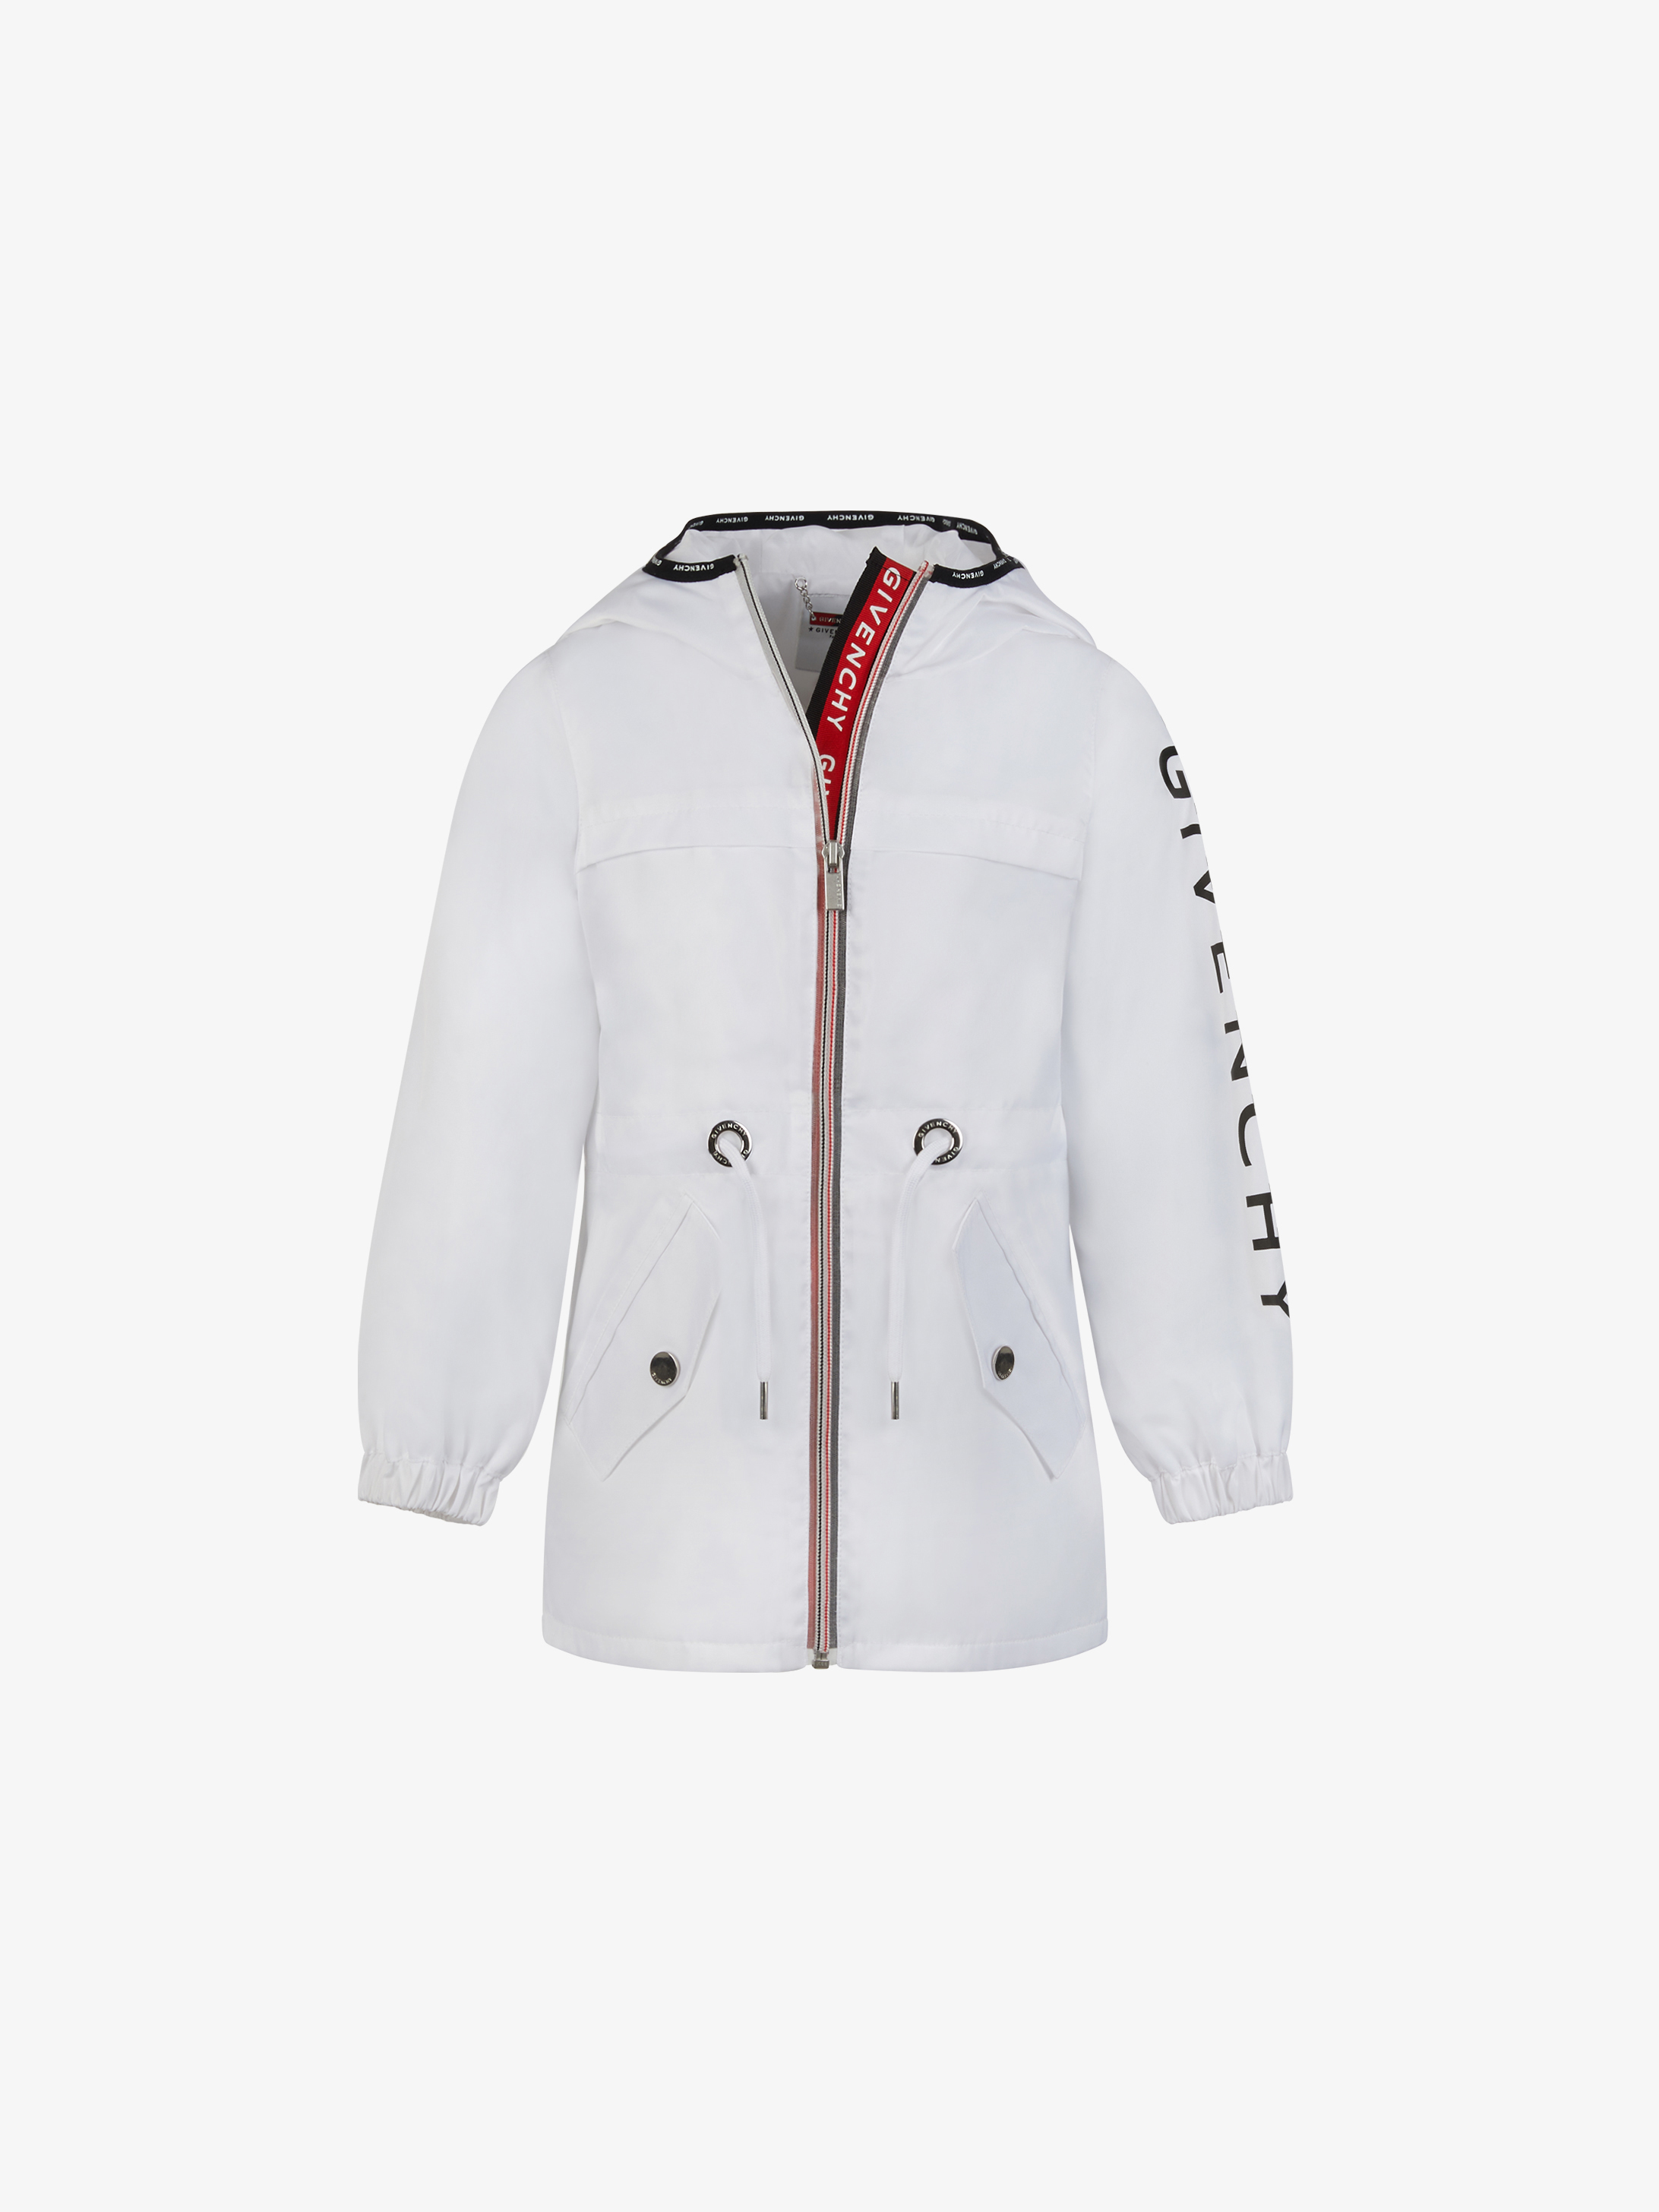 GIVENCHY hooded windbreaker in nylon